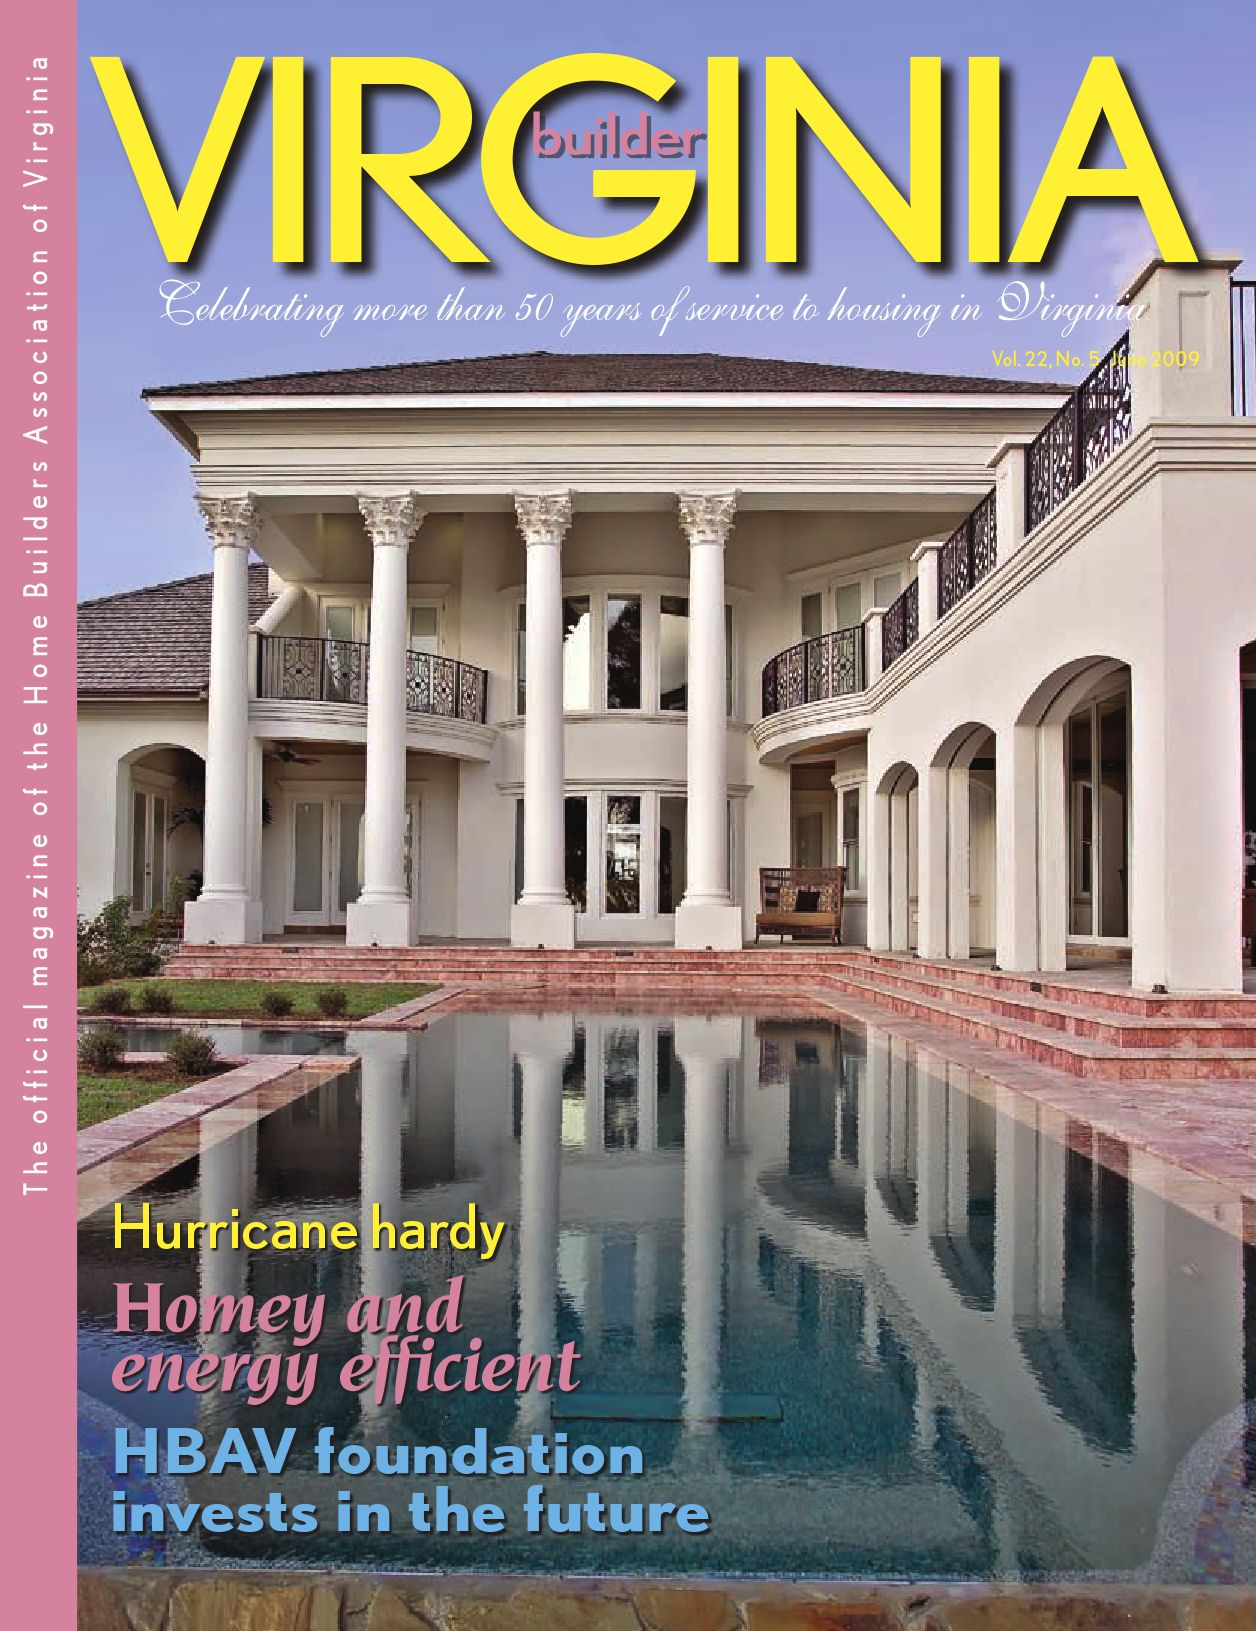 Virginia builder by association publishing inc issuu for Builders in va